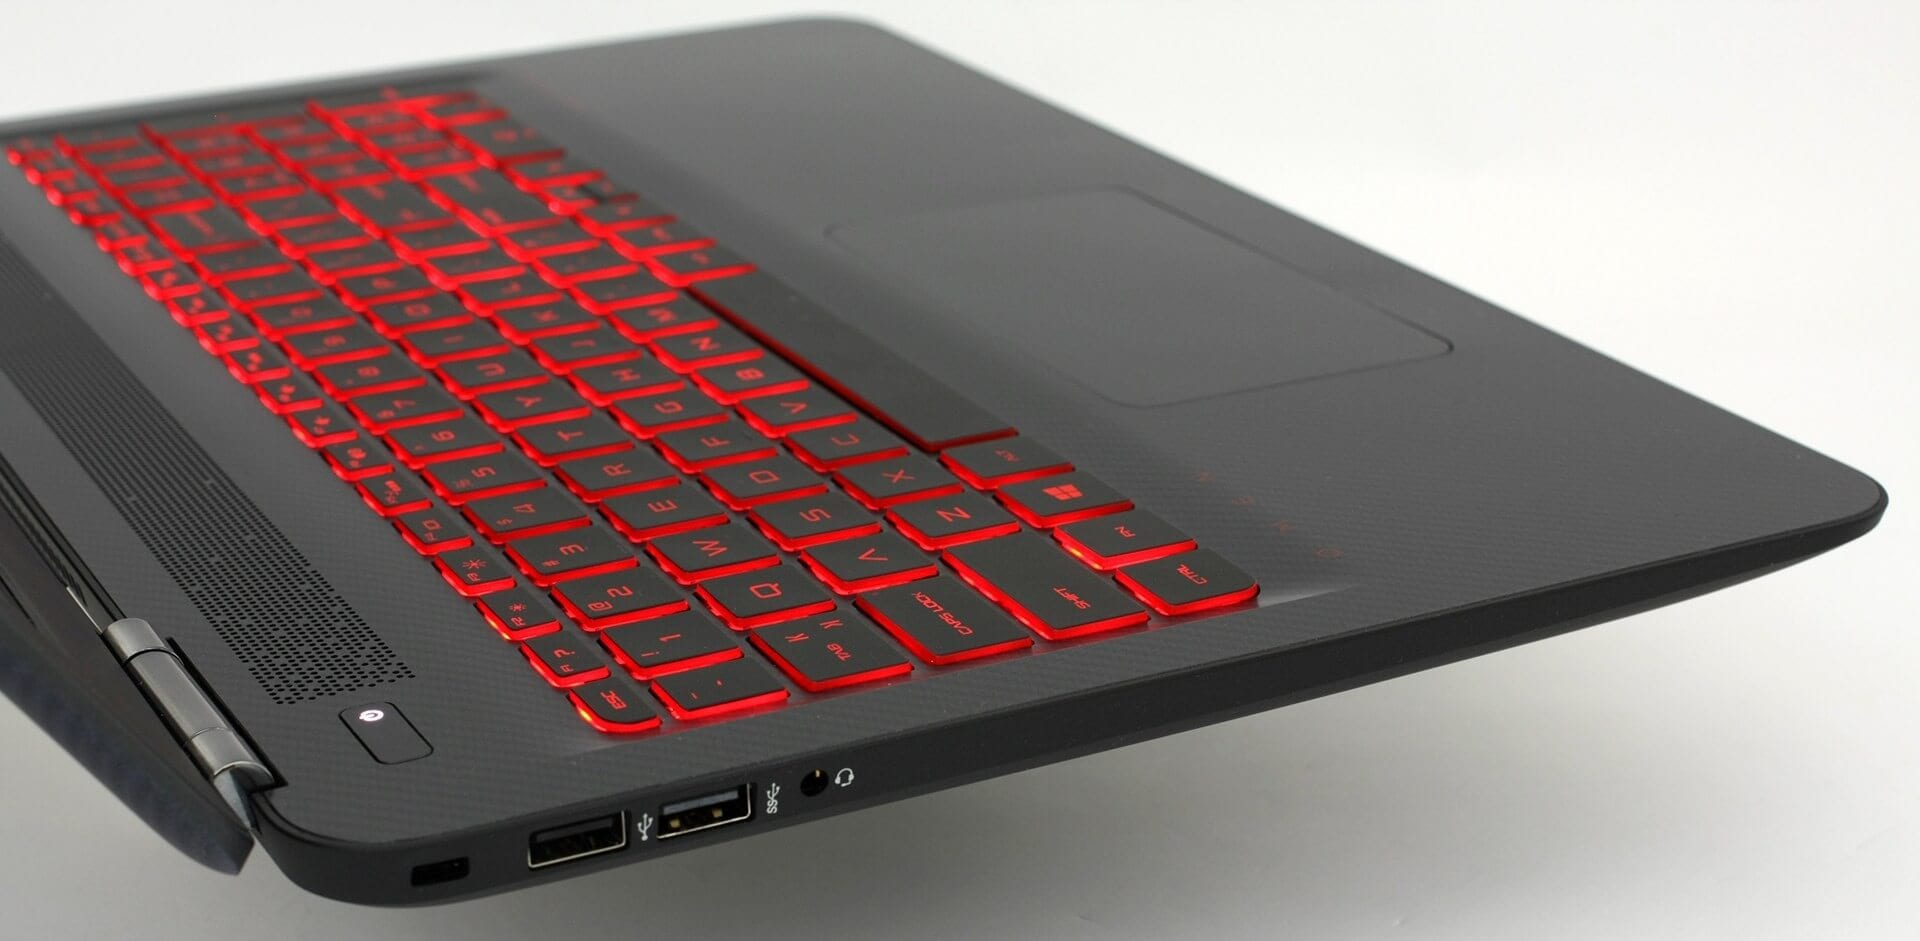 Best budget gaming laptop (UK) Under 500 – 1000 in 2017/2018